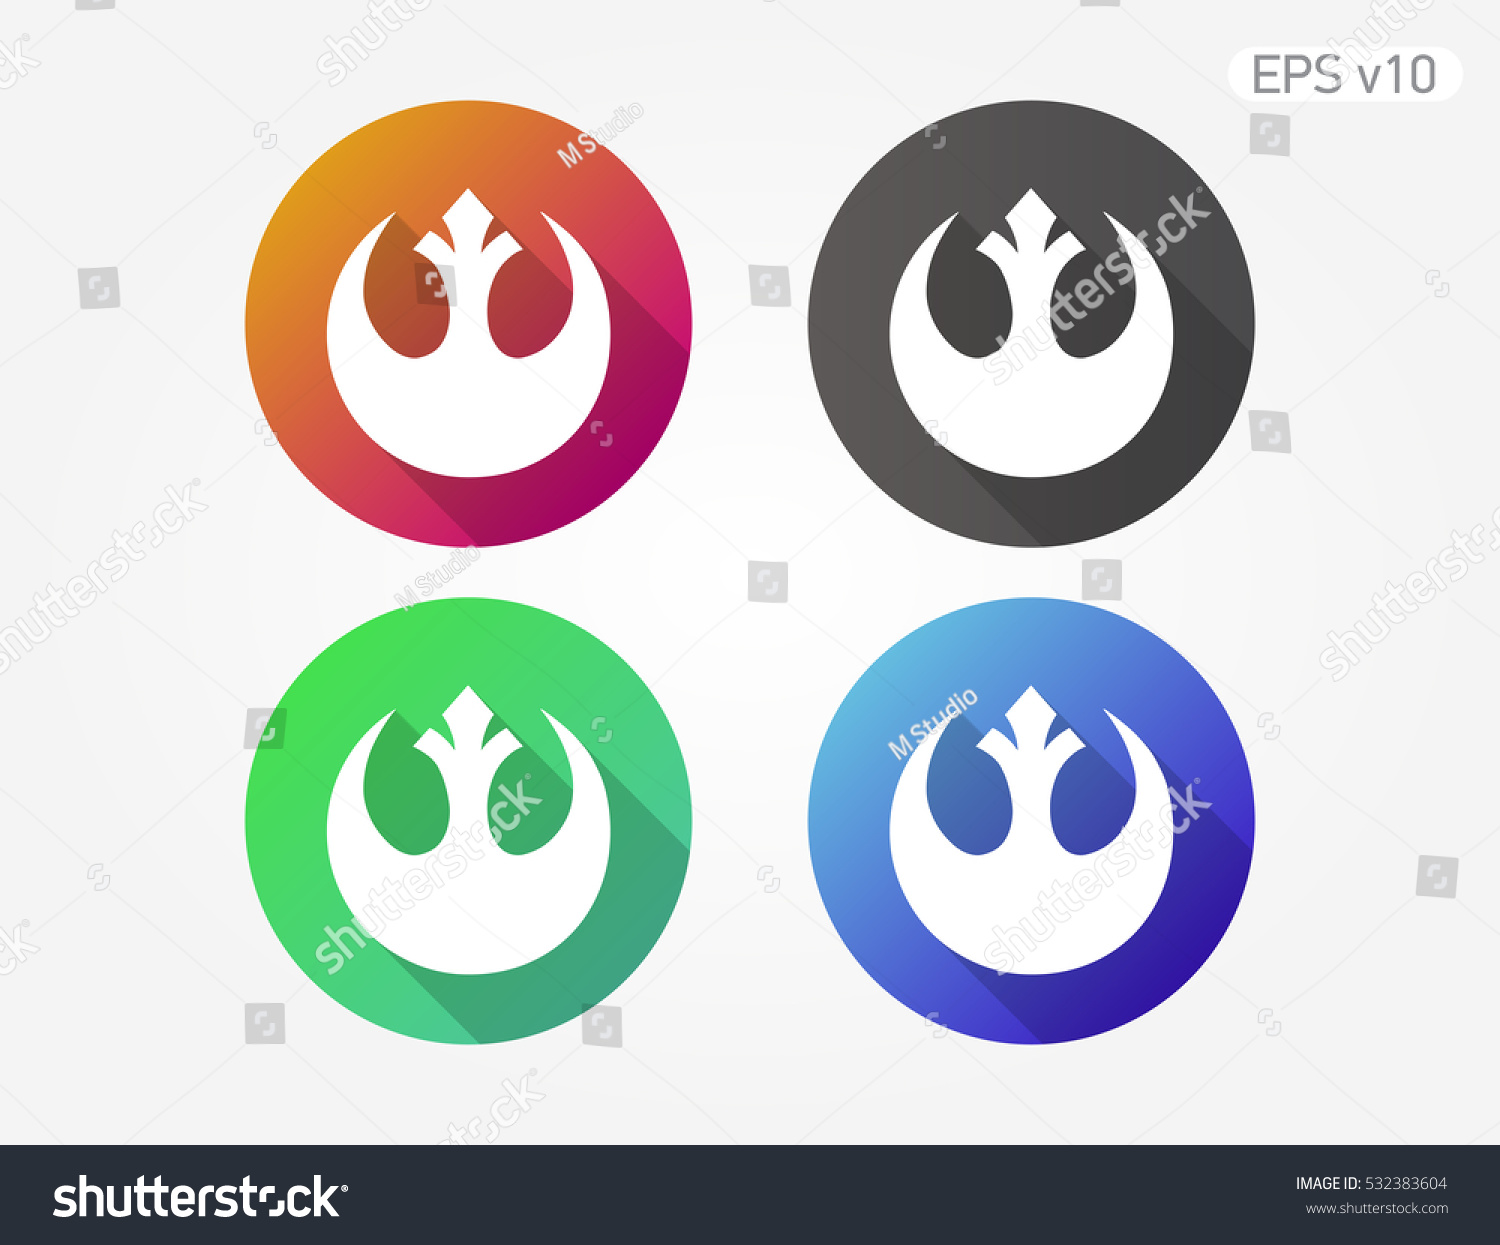 Colored icon star wars symbol shadow stock vector 532383604 colored icon of star wars symbol with shadow biocorpaavc Images